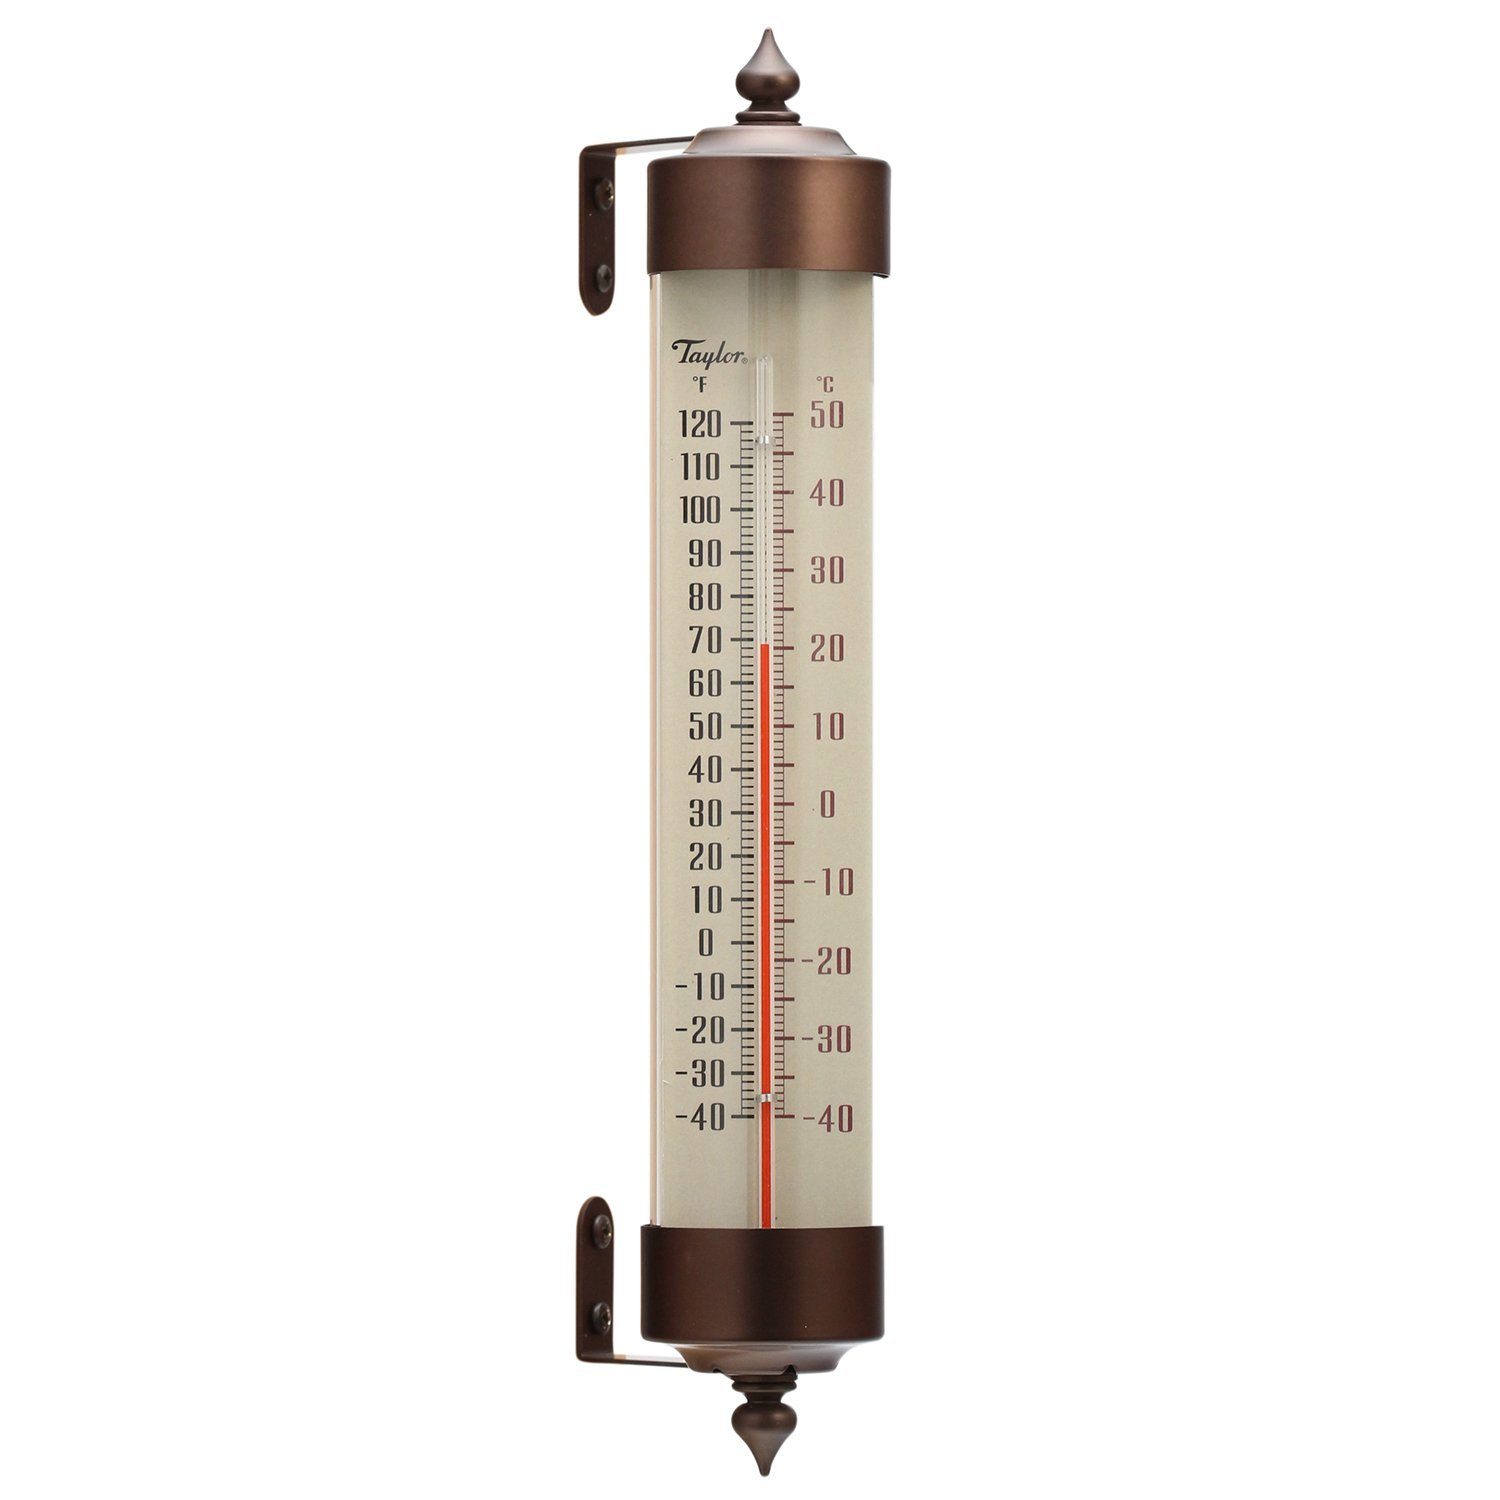 Taylor Heritage Spirit-Filled Metal Thermometer, 12.25-inch